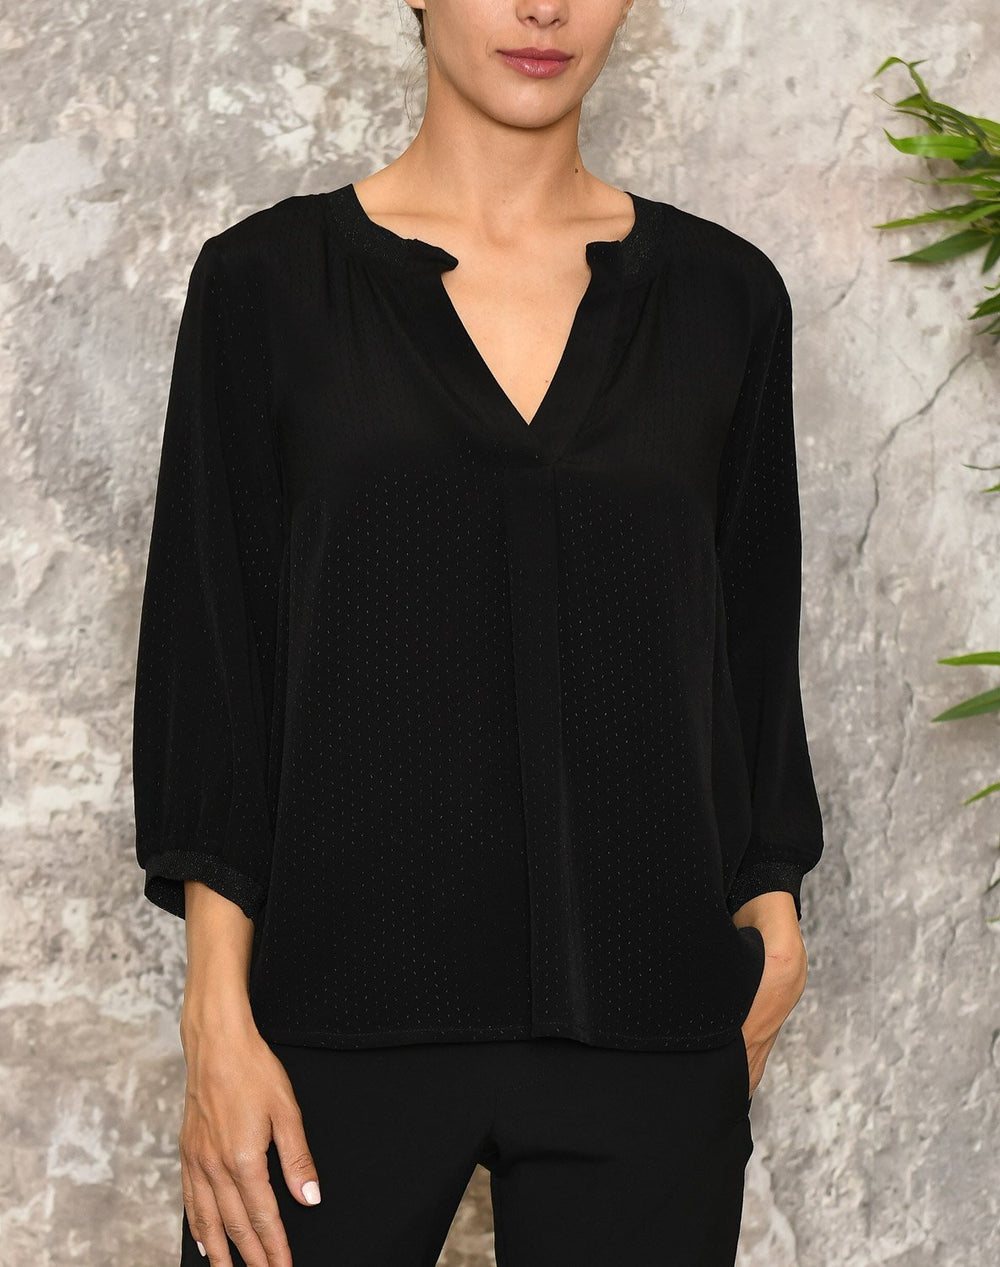 Luxzuz Paulina bluse black - Online-Mode